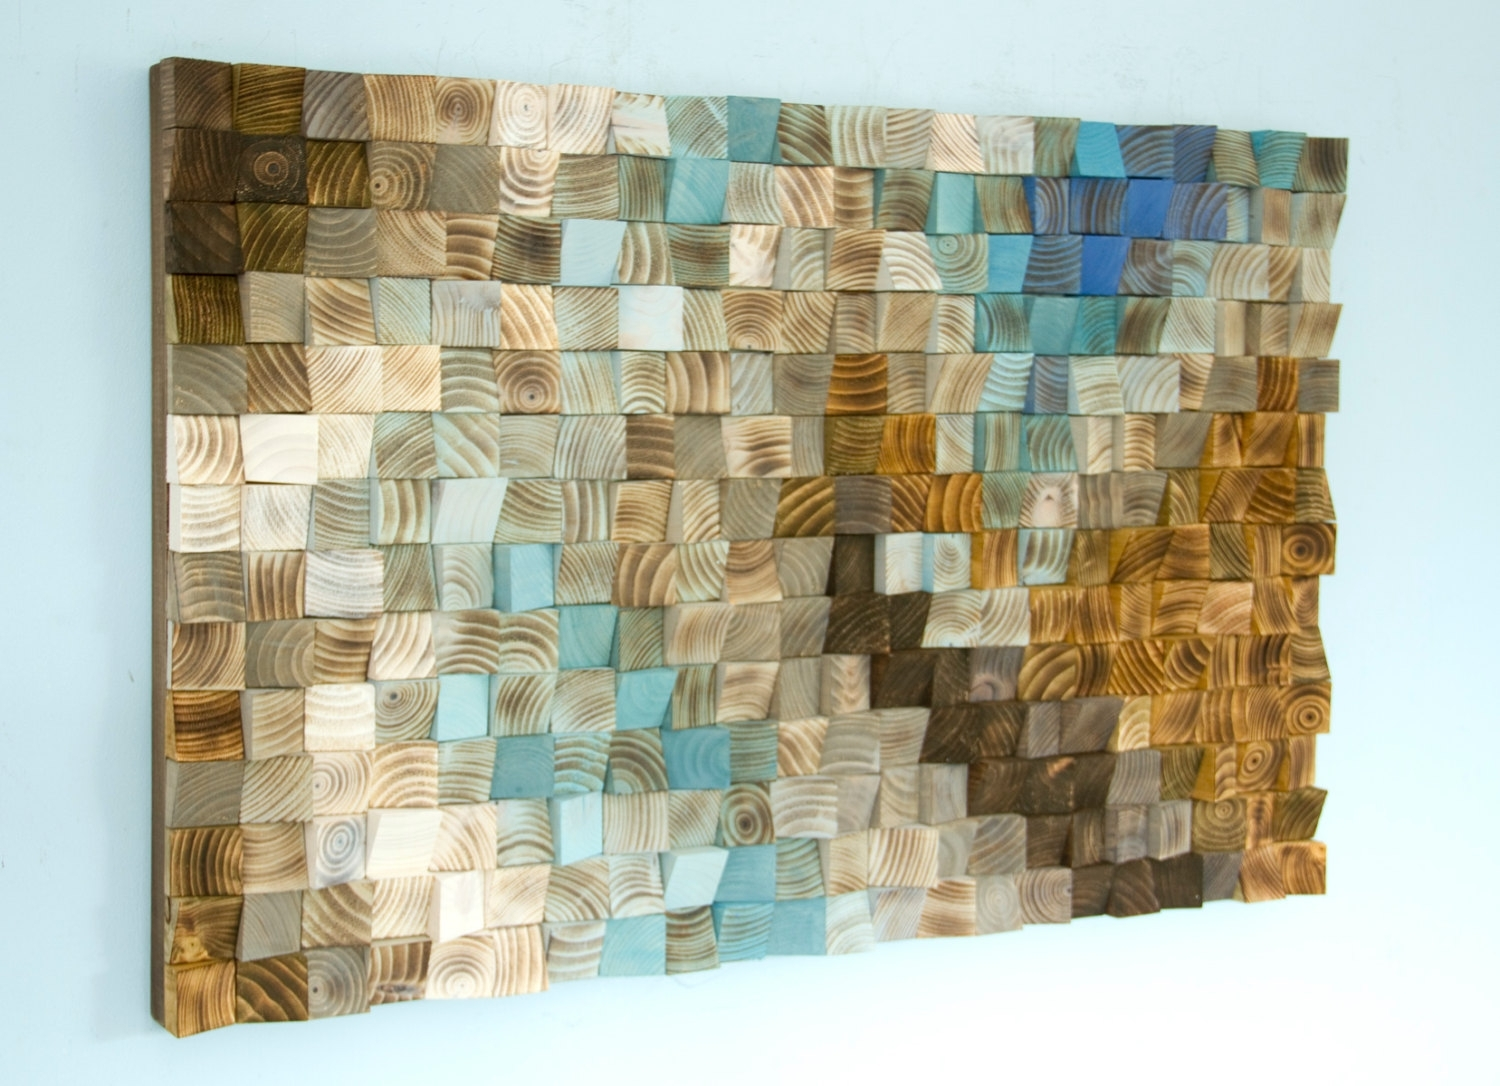 Mosaic Wall Art Elegant Wood Office Decor Geometric 24 X 36 Within Intended For Mosaic Wall Art (View 13 of 20)